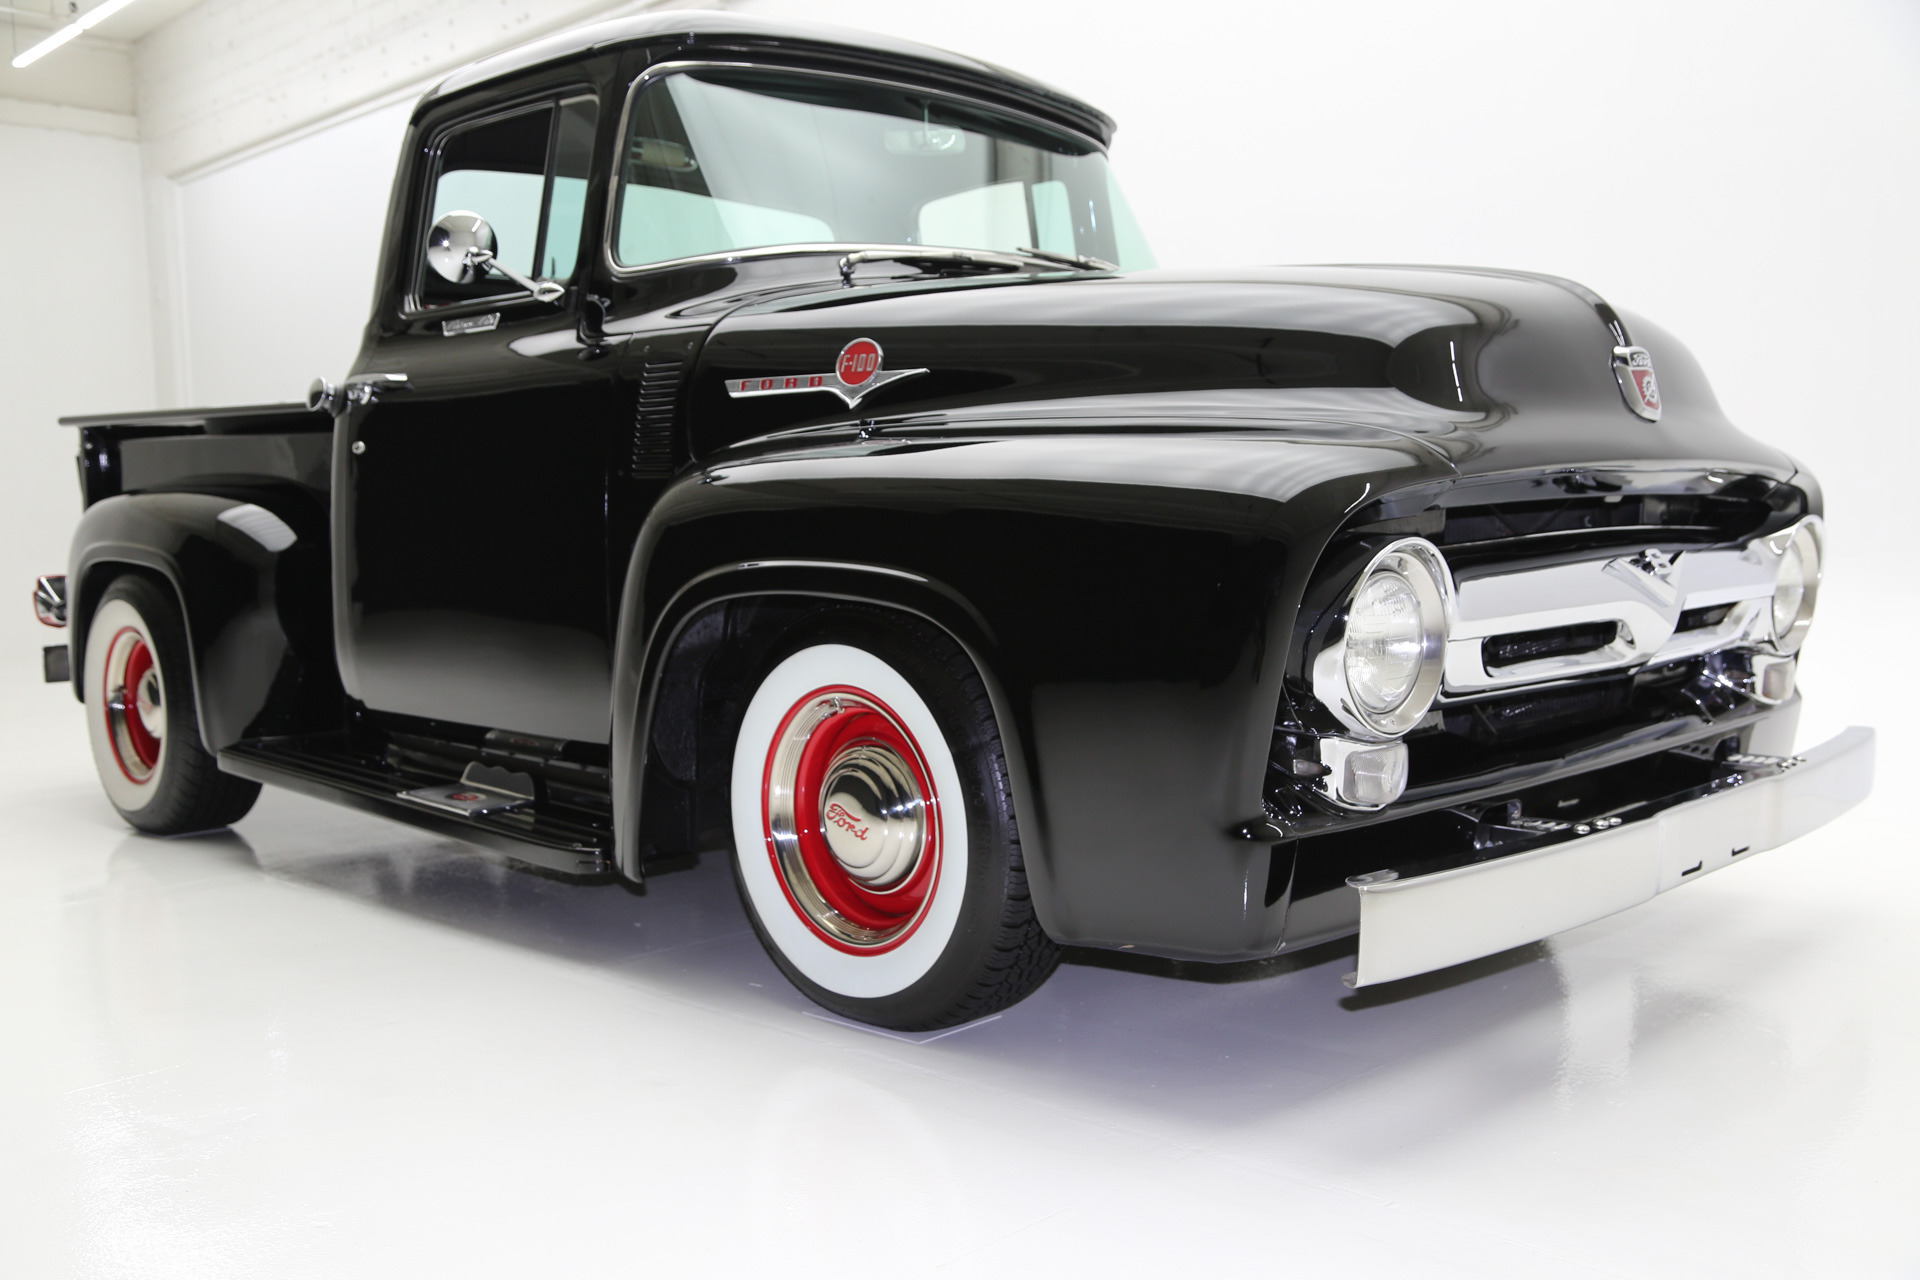 1956 ford f100 custom custom vintage interior american dream machines classic cars muscle cars. Black Bedroom Furniture Sets. Home Design Ideas